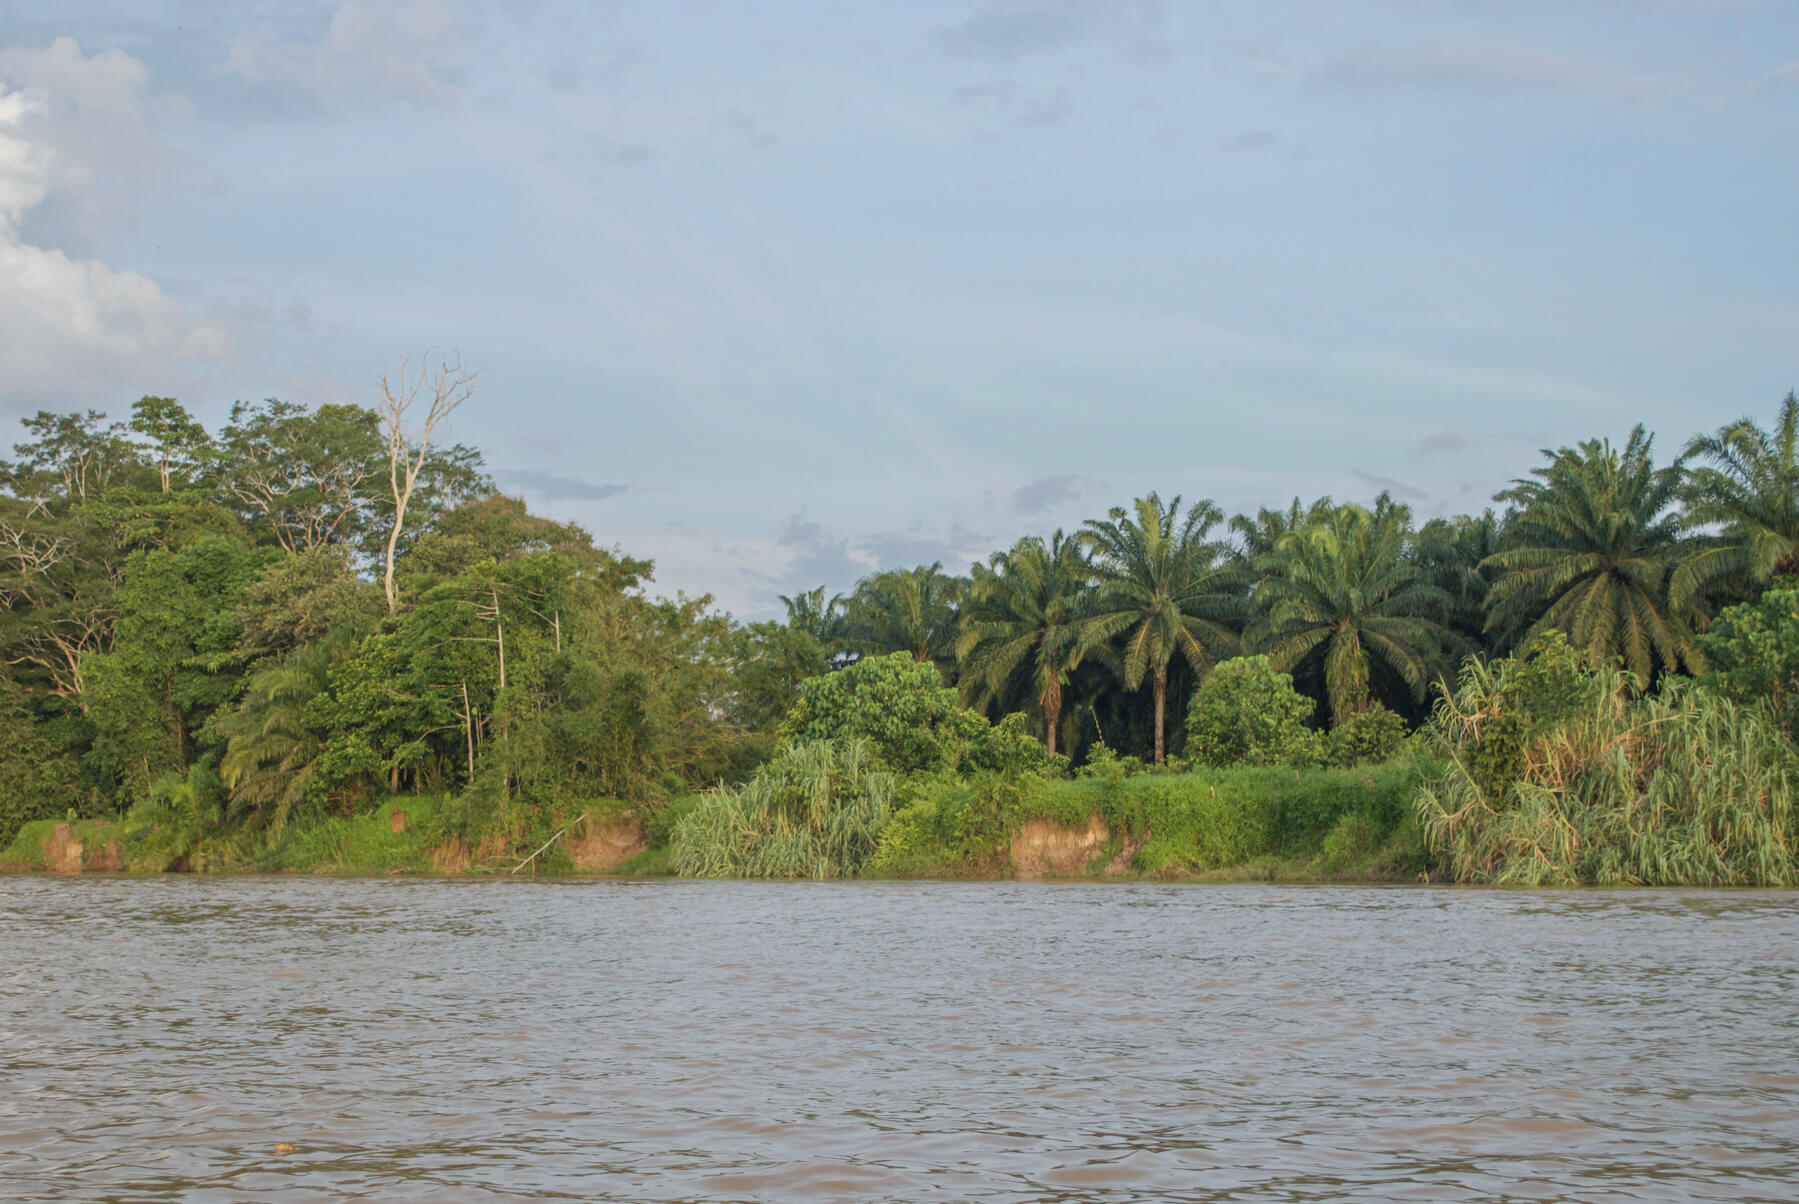 When the palm oil plantation meets the jungle on the side of the river